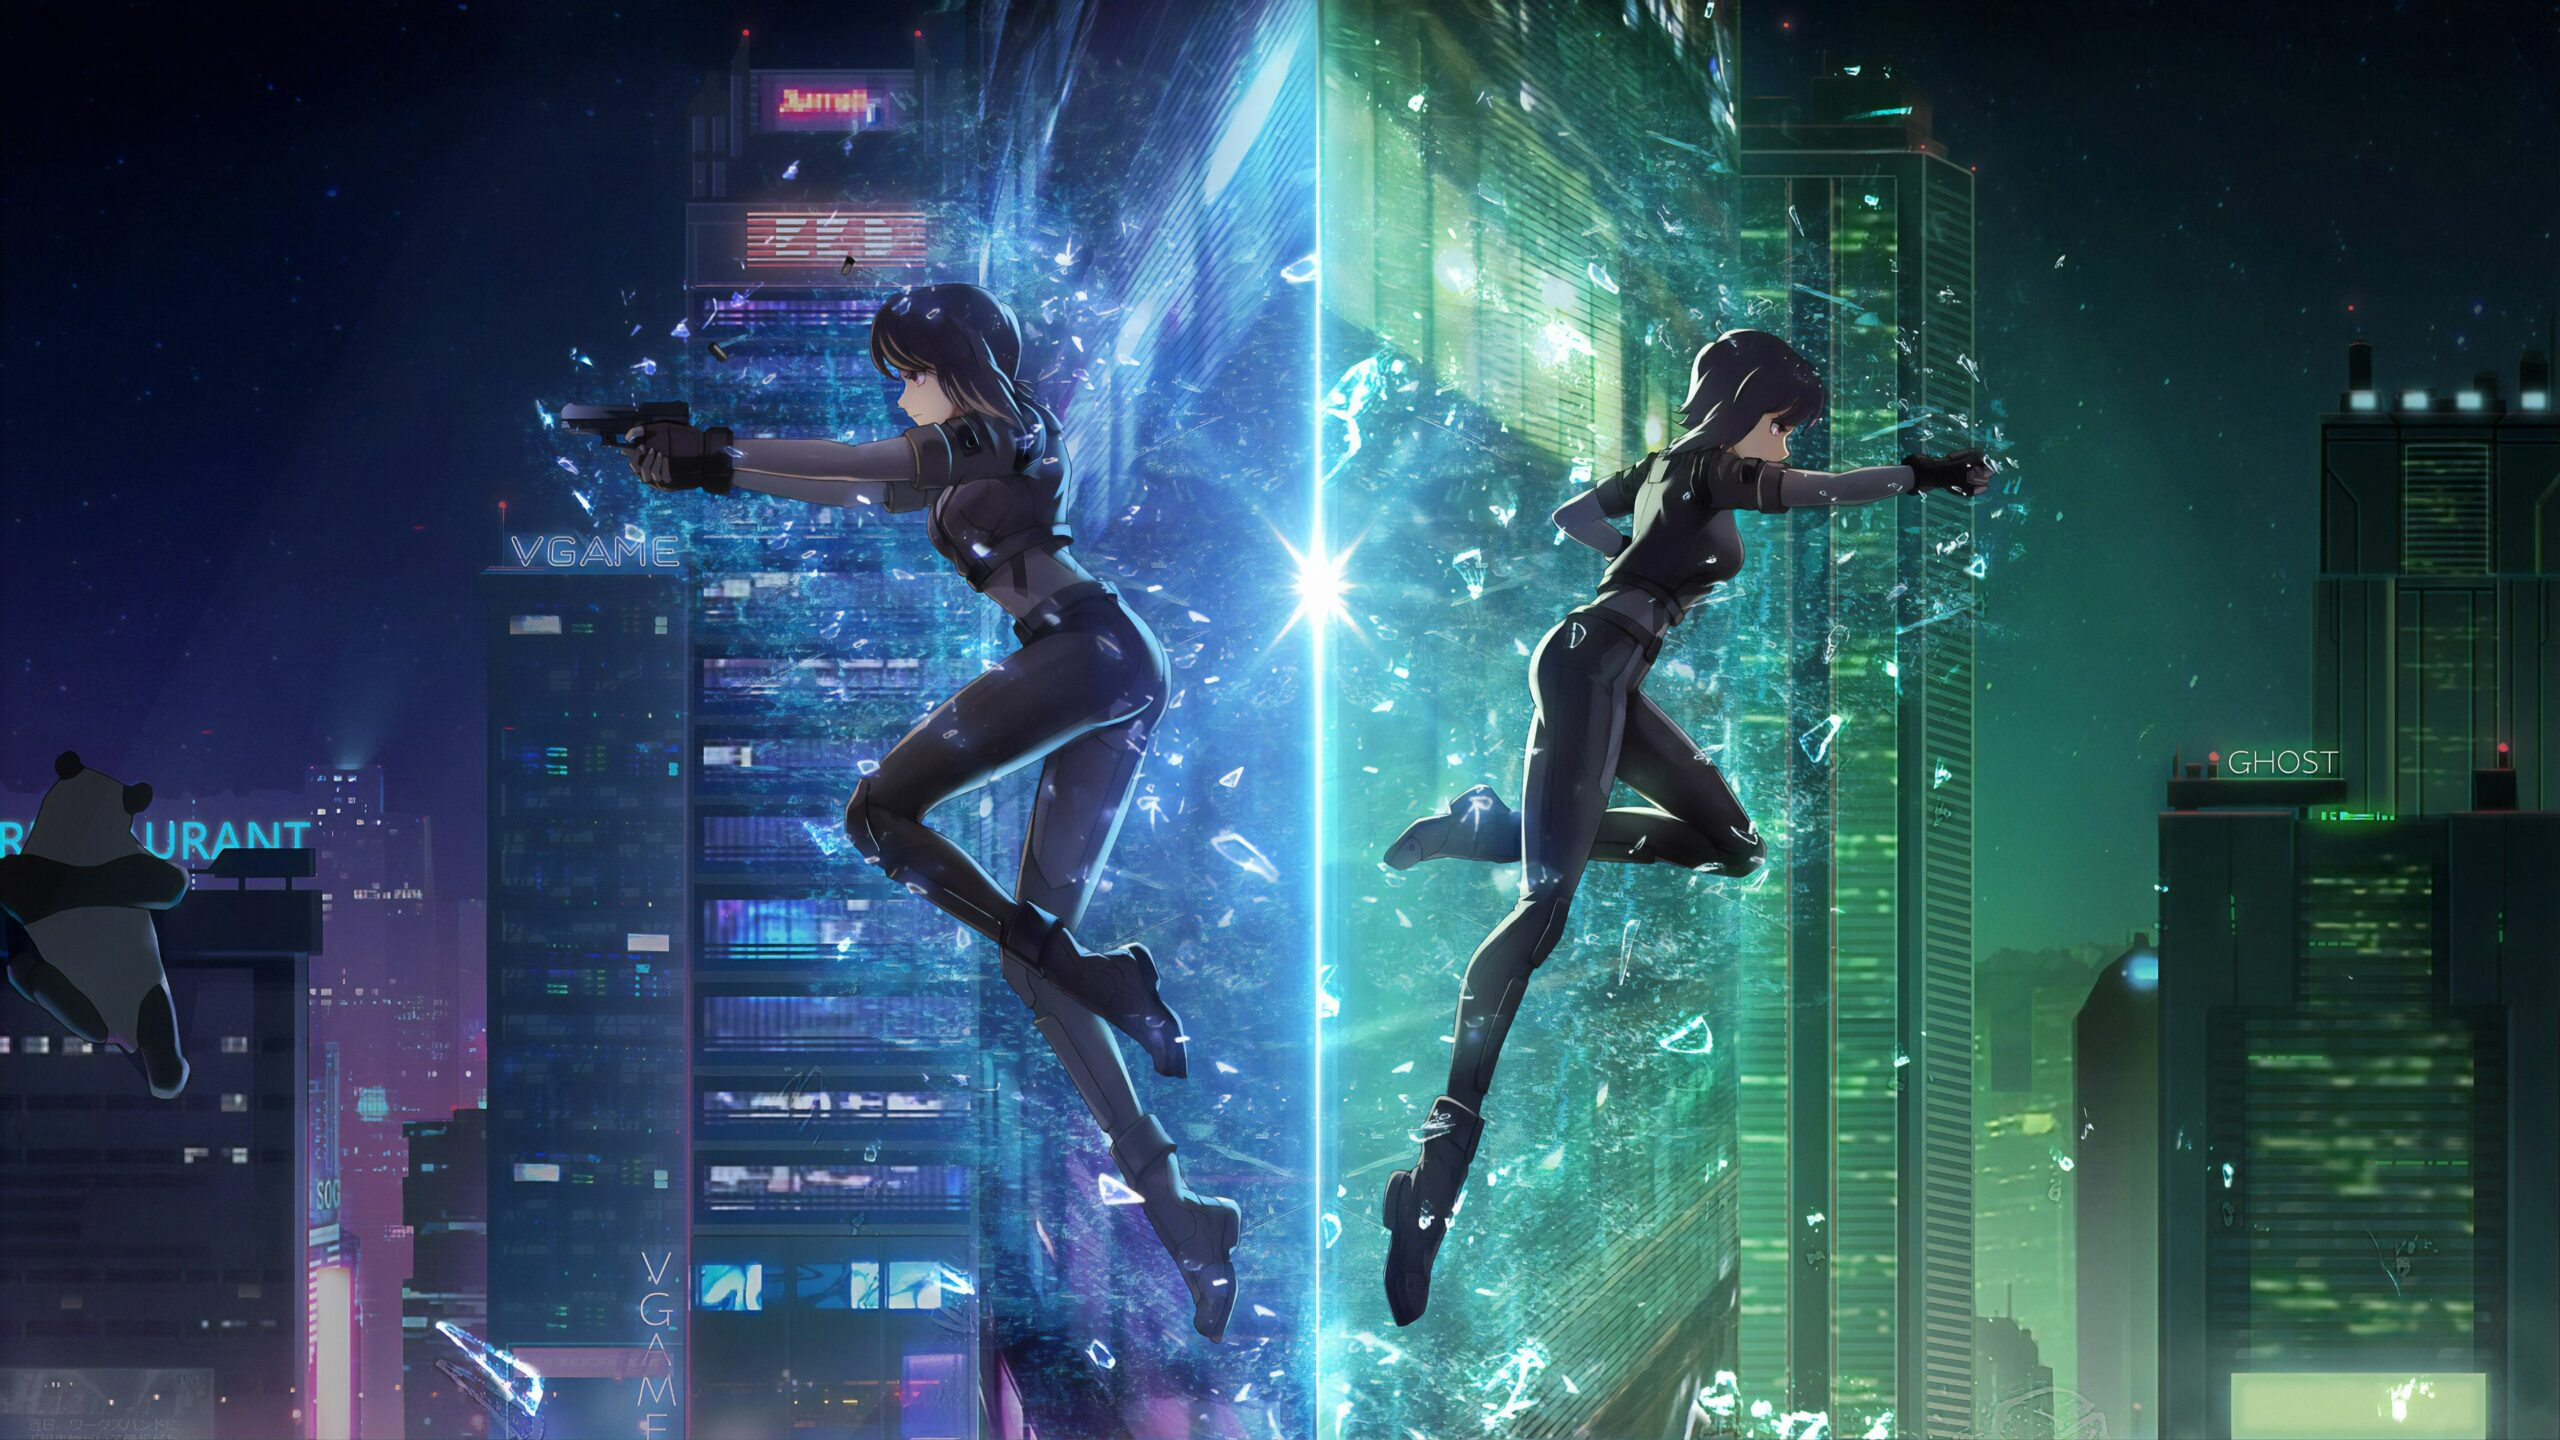 Ghost In The Shell Anime Wallpapers